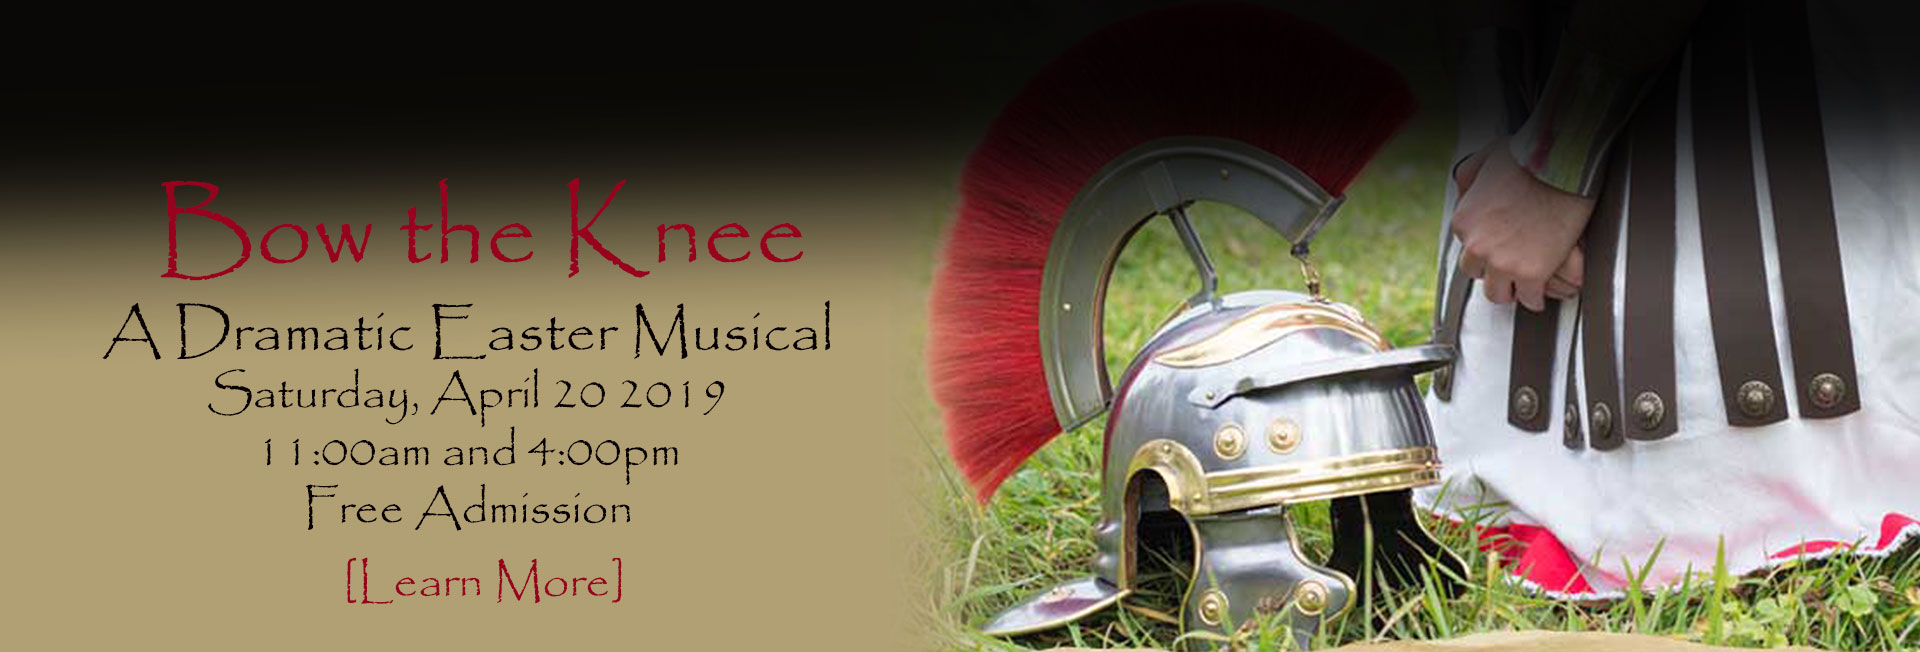 Bow the Knee - A Dramatic Easter Musical - Saturday April 20 2019 11:00am and 4:00pm